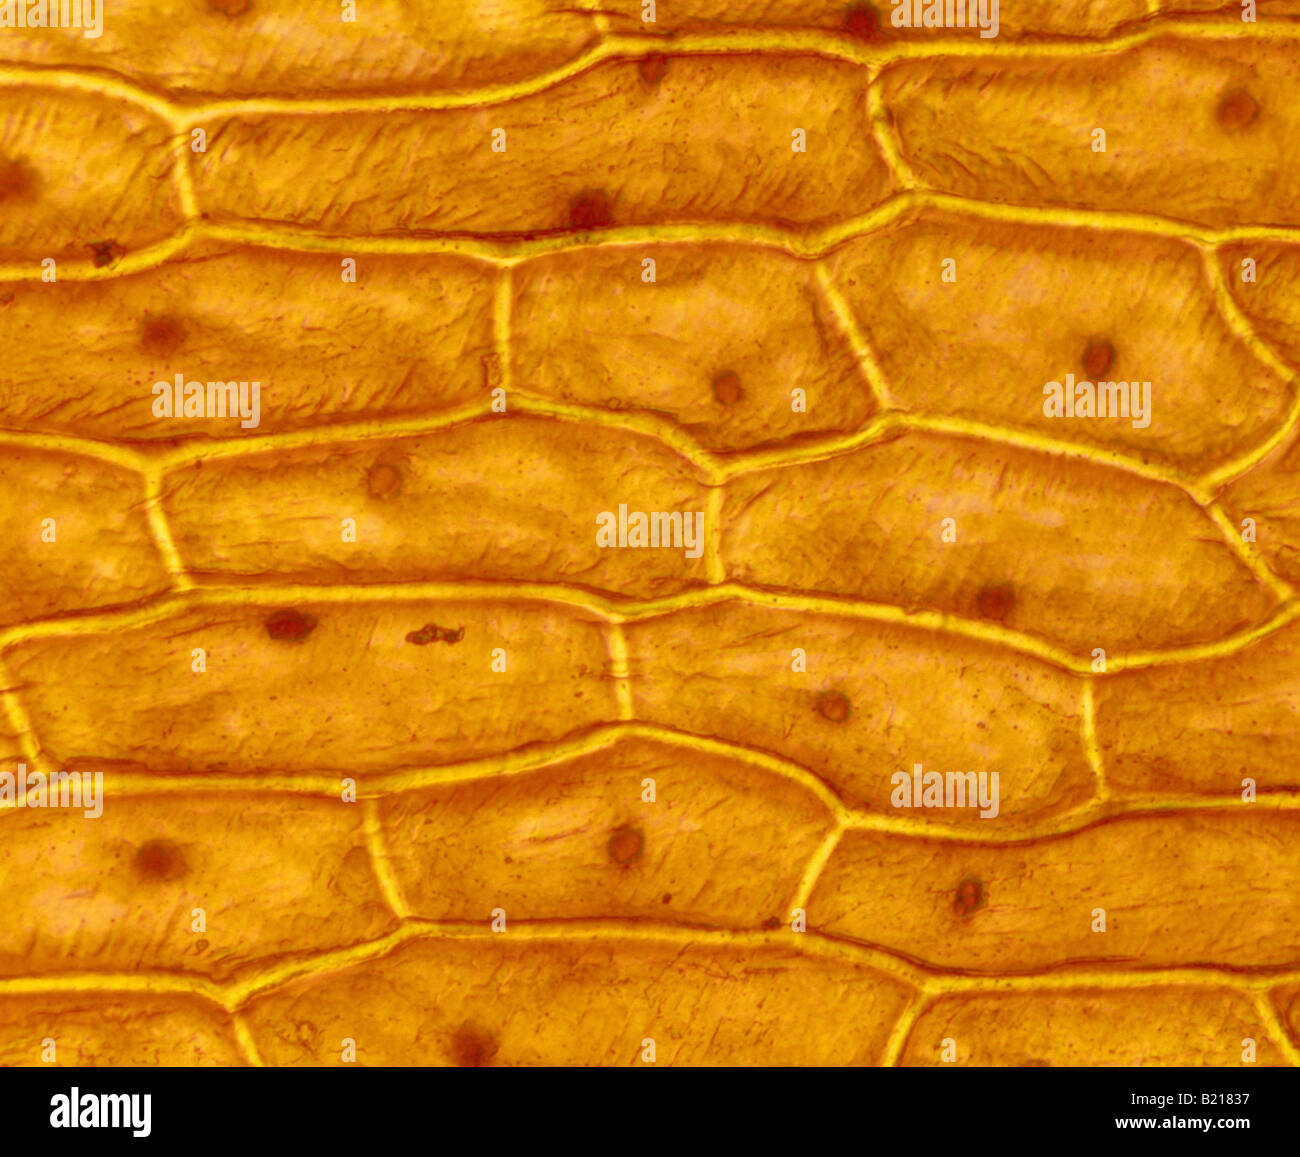 hight resolution of onion skin cells epidermal cells shows cell structure and nucleus stained in iodine live 100x studio